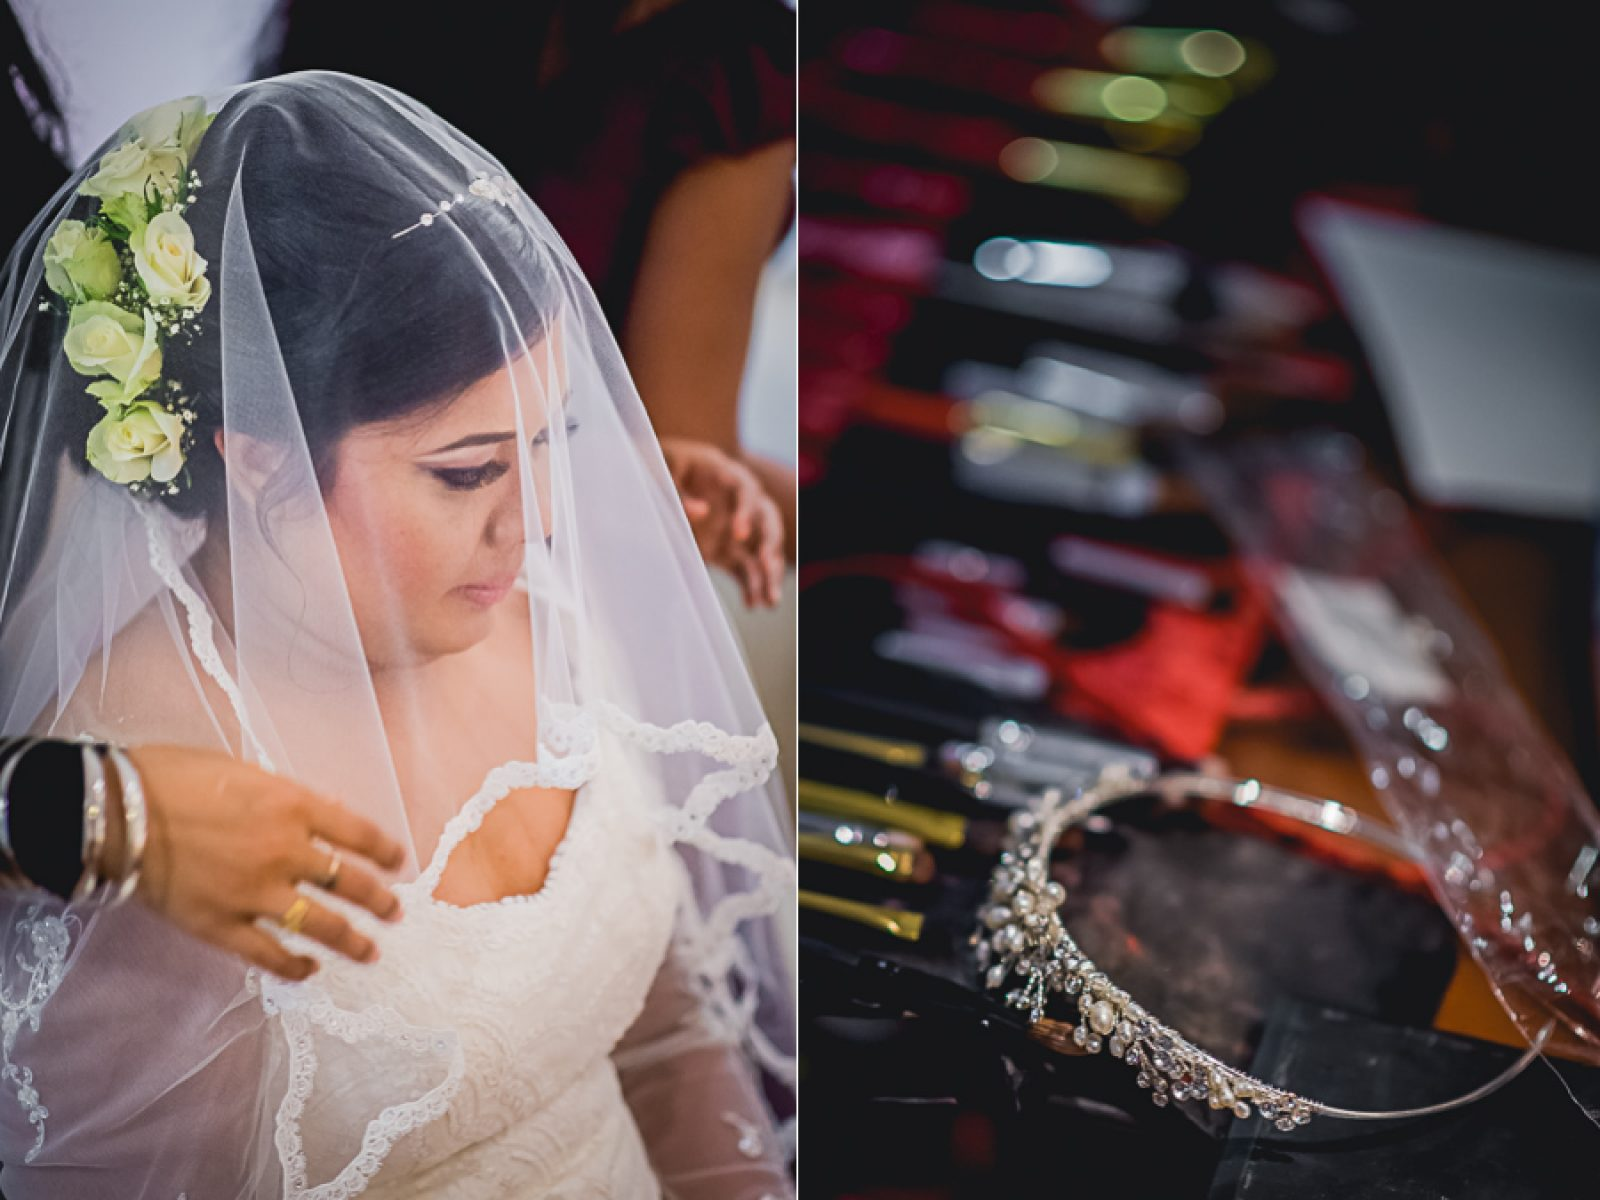 121 1600x1200 - Darshani and Anthony - wedding photographer in London